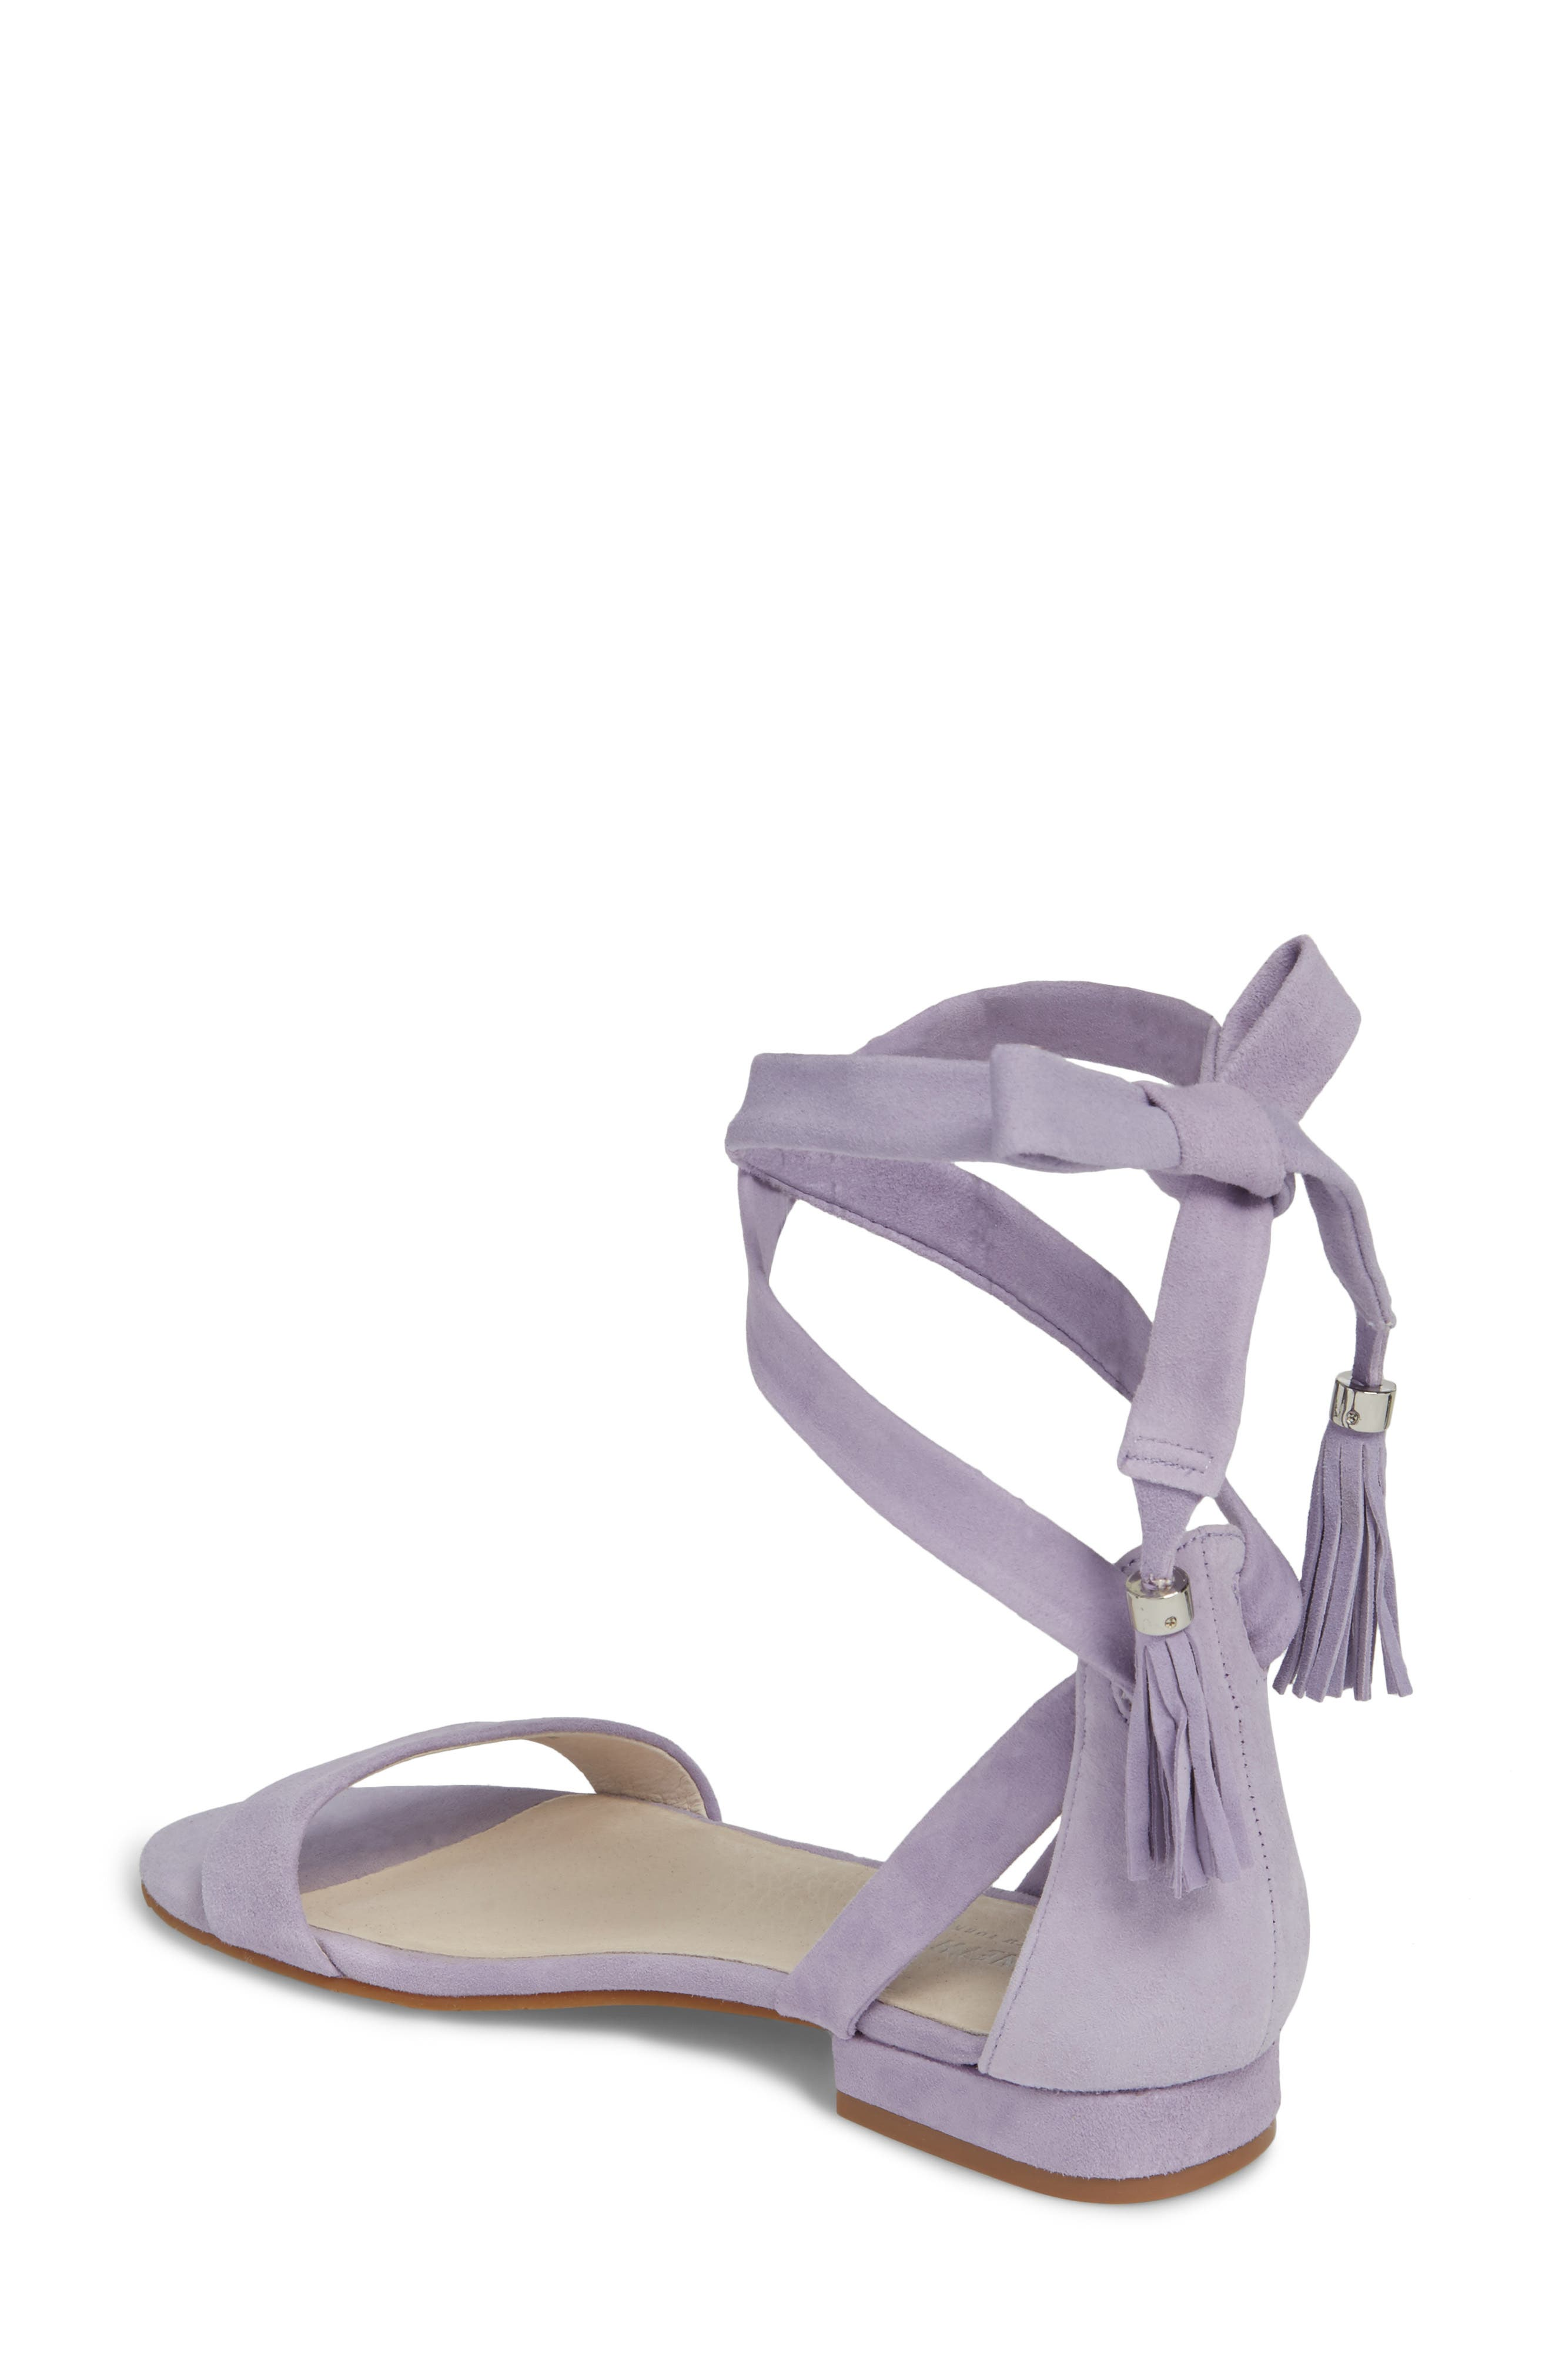 Valen Tassel Lace-Up Sandal,                             Alternate thumbnail 2, color,                             530